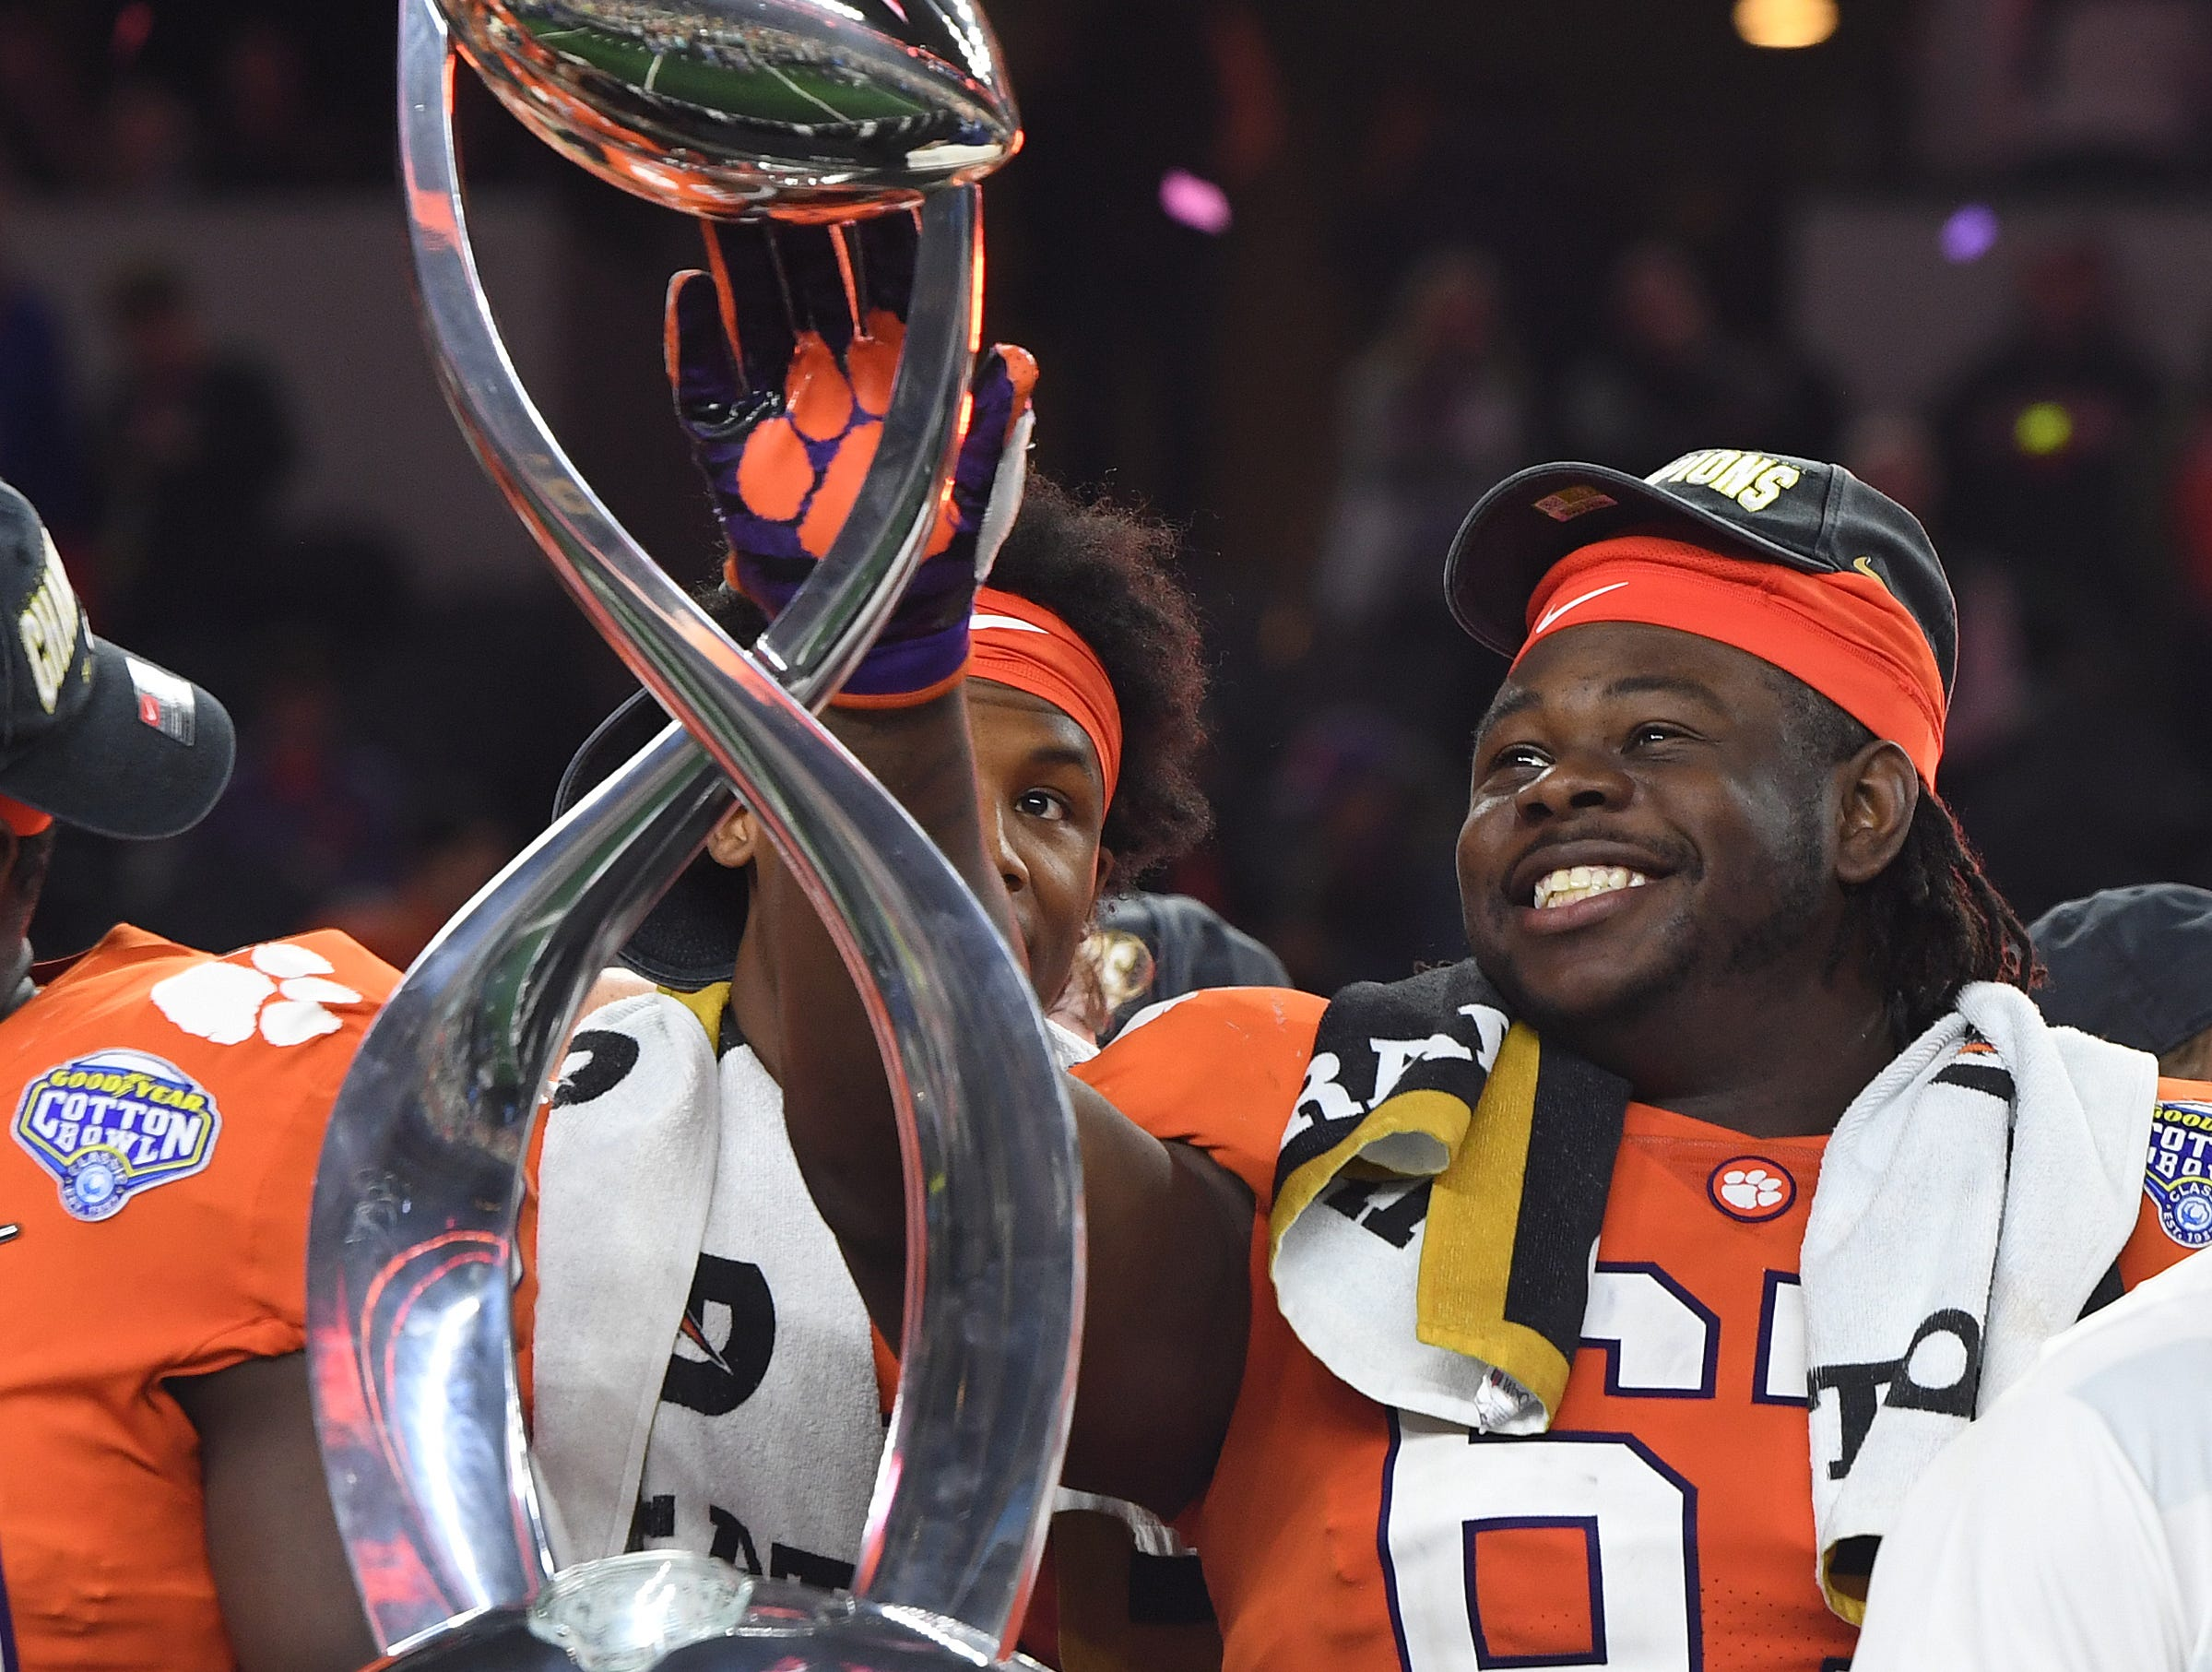 Clemson defensive lineman Albert Huggins (67) touches theGoodyear Cotton Bowl trophy after the Tigers 30-3 win over Notre Dame at AT&T stadium in Arlington, TX Saturday, December 29, 2018.